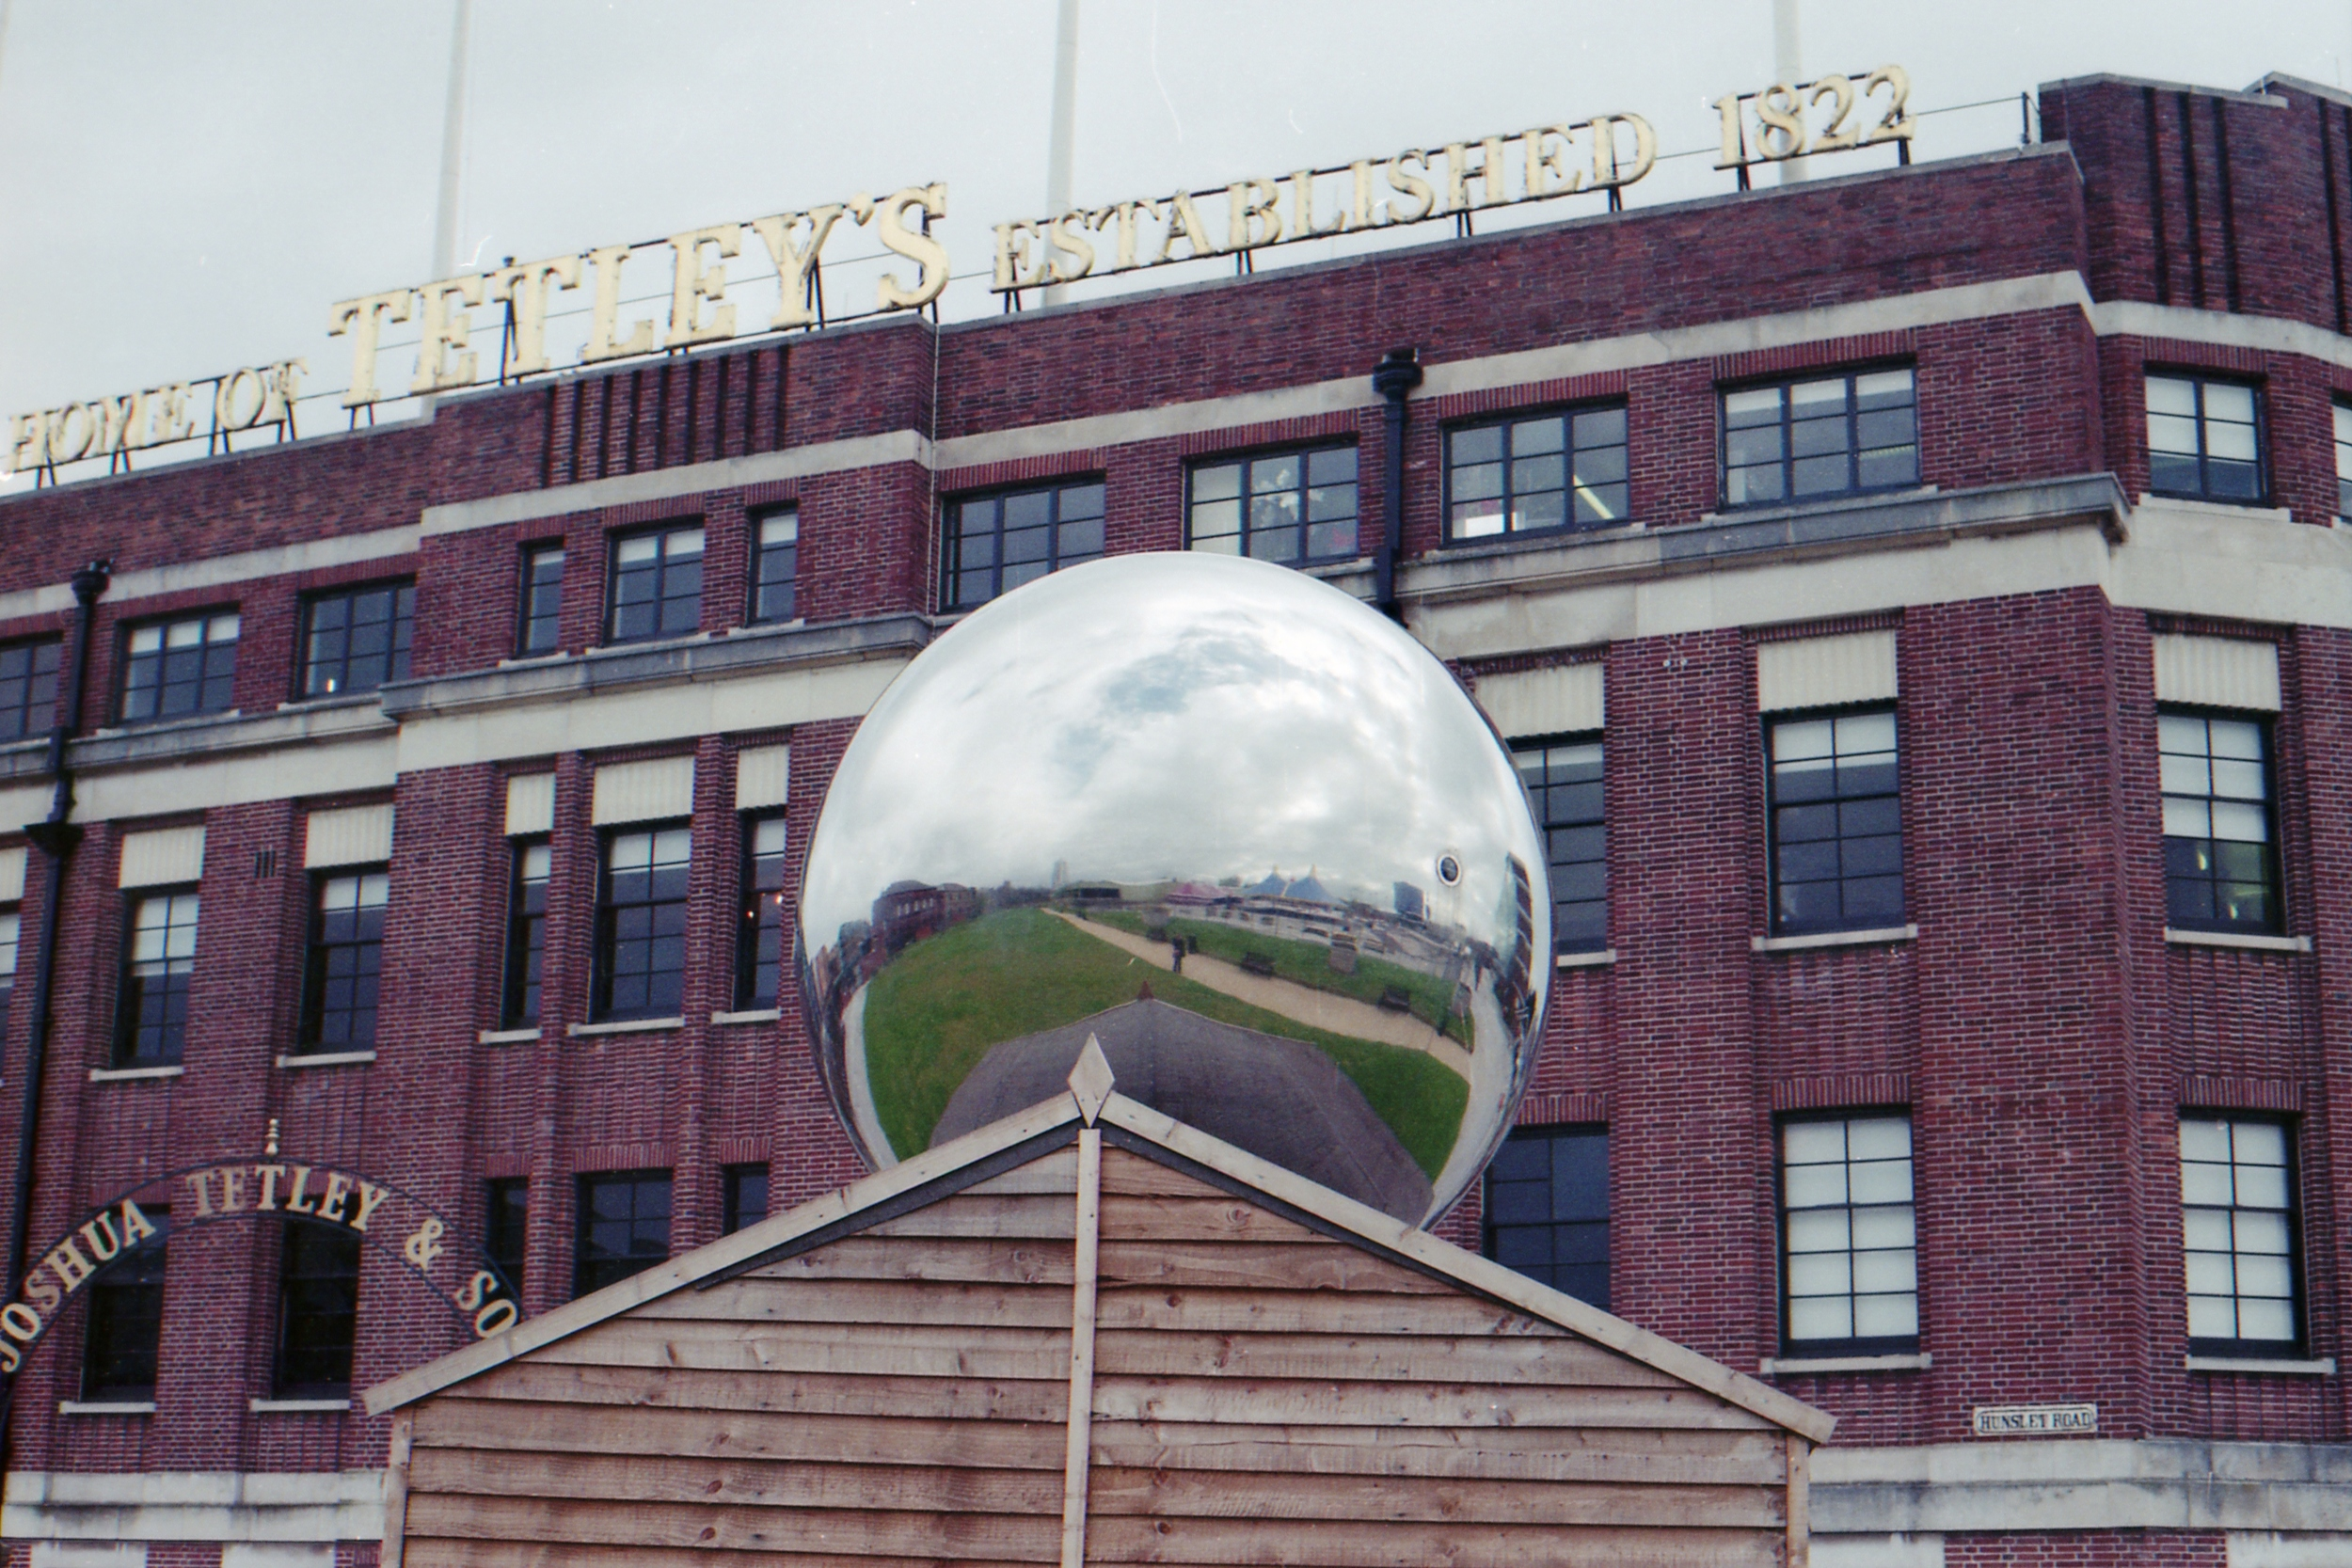 Day 116 - An art installation at the Tetley building in Leeds.